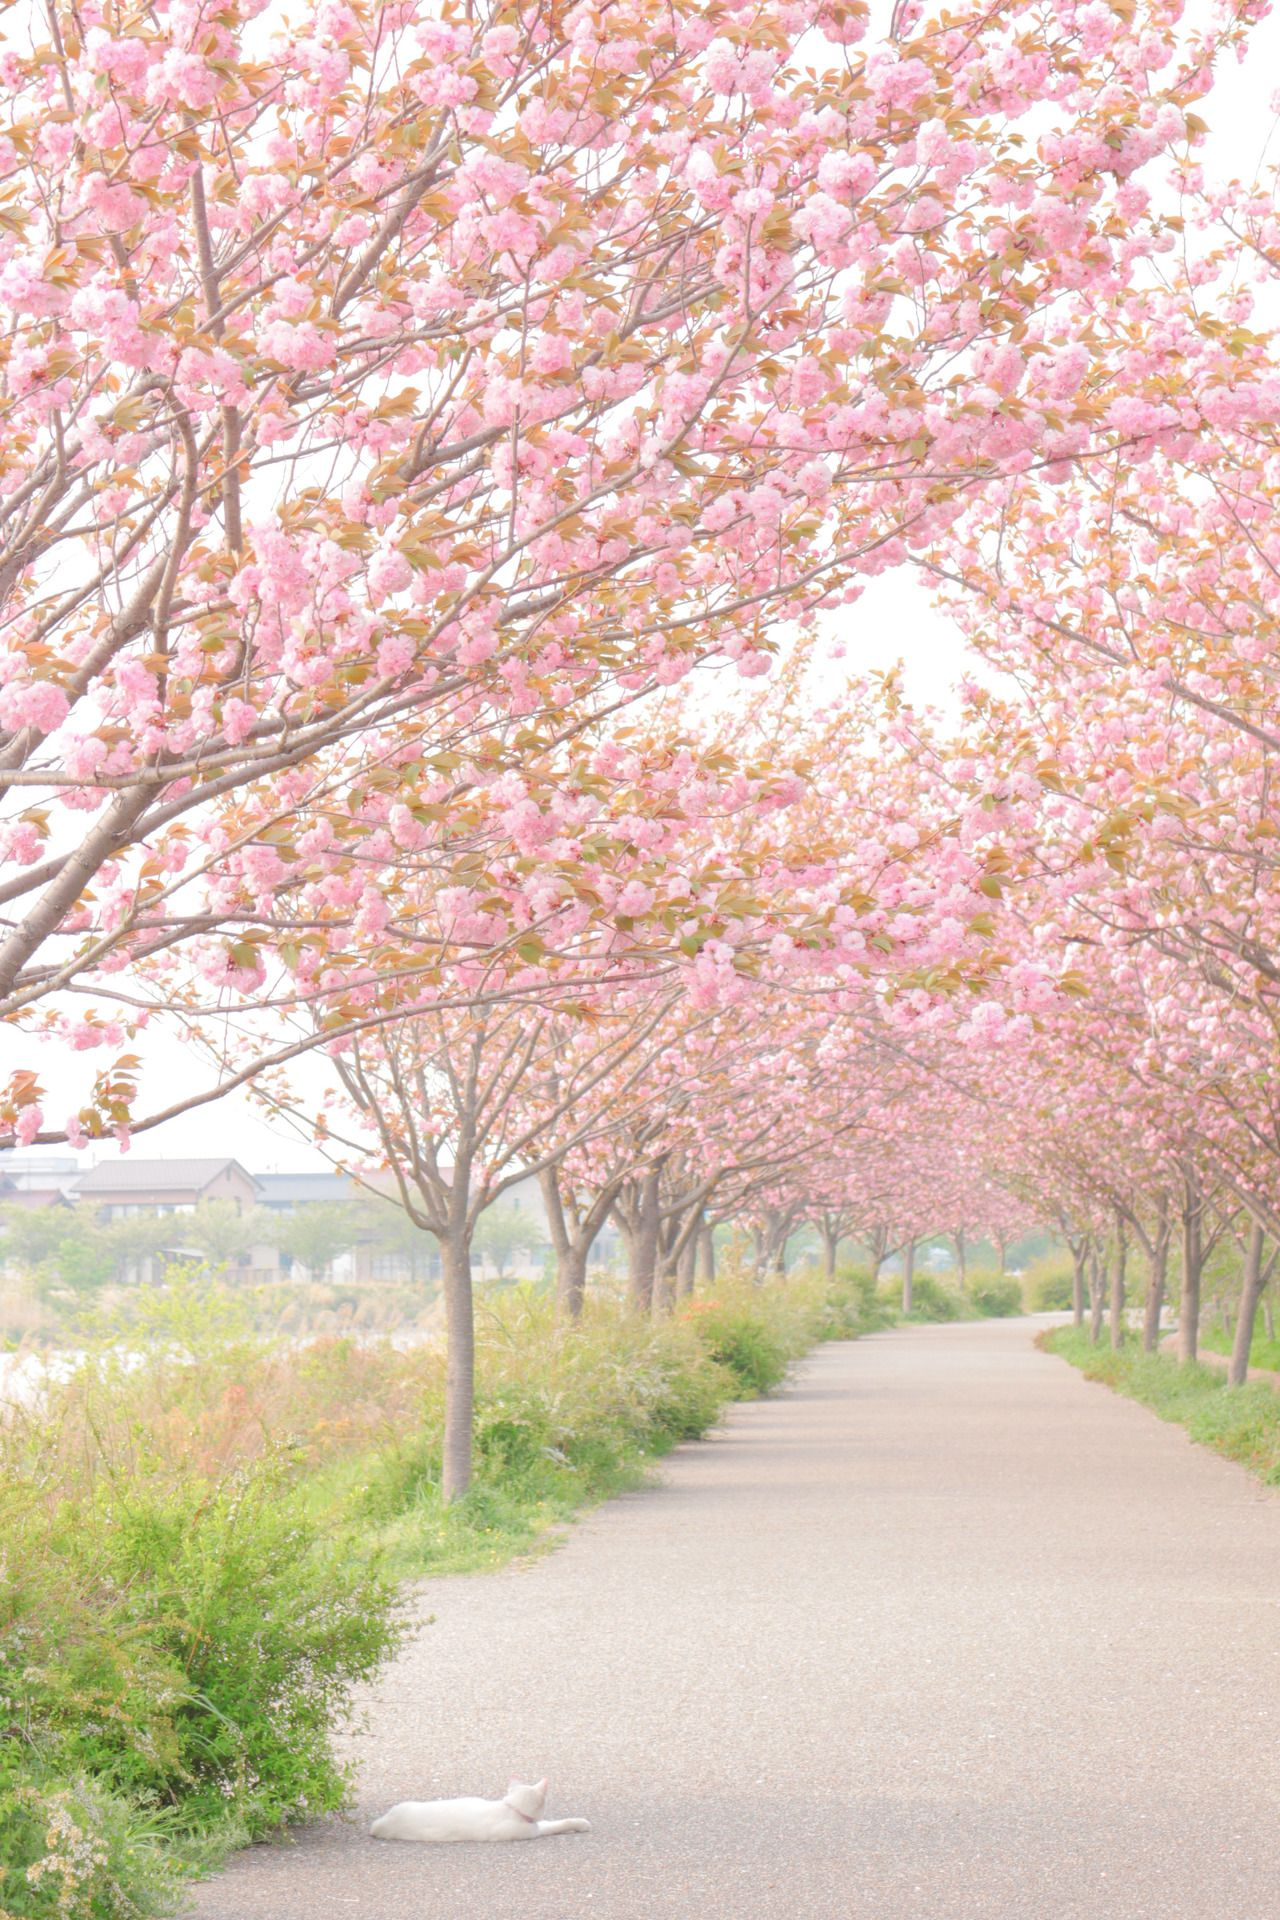 Pin By Kitty Mcgurer On Spring Easter Beautiful Nature Nature Pink Trees